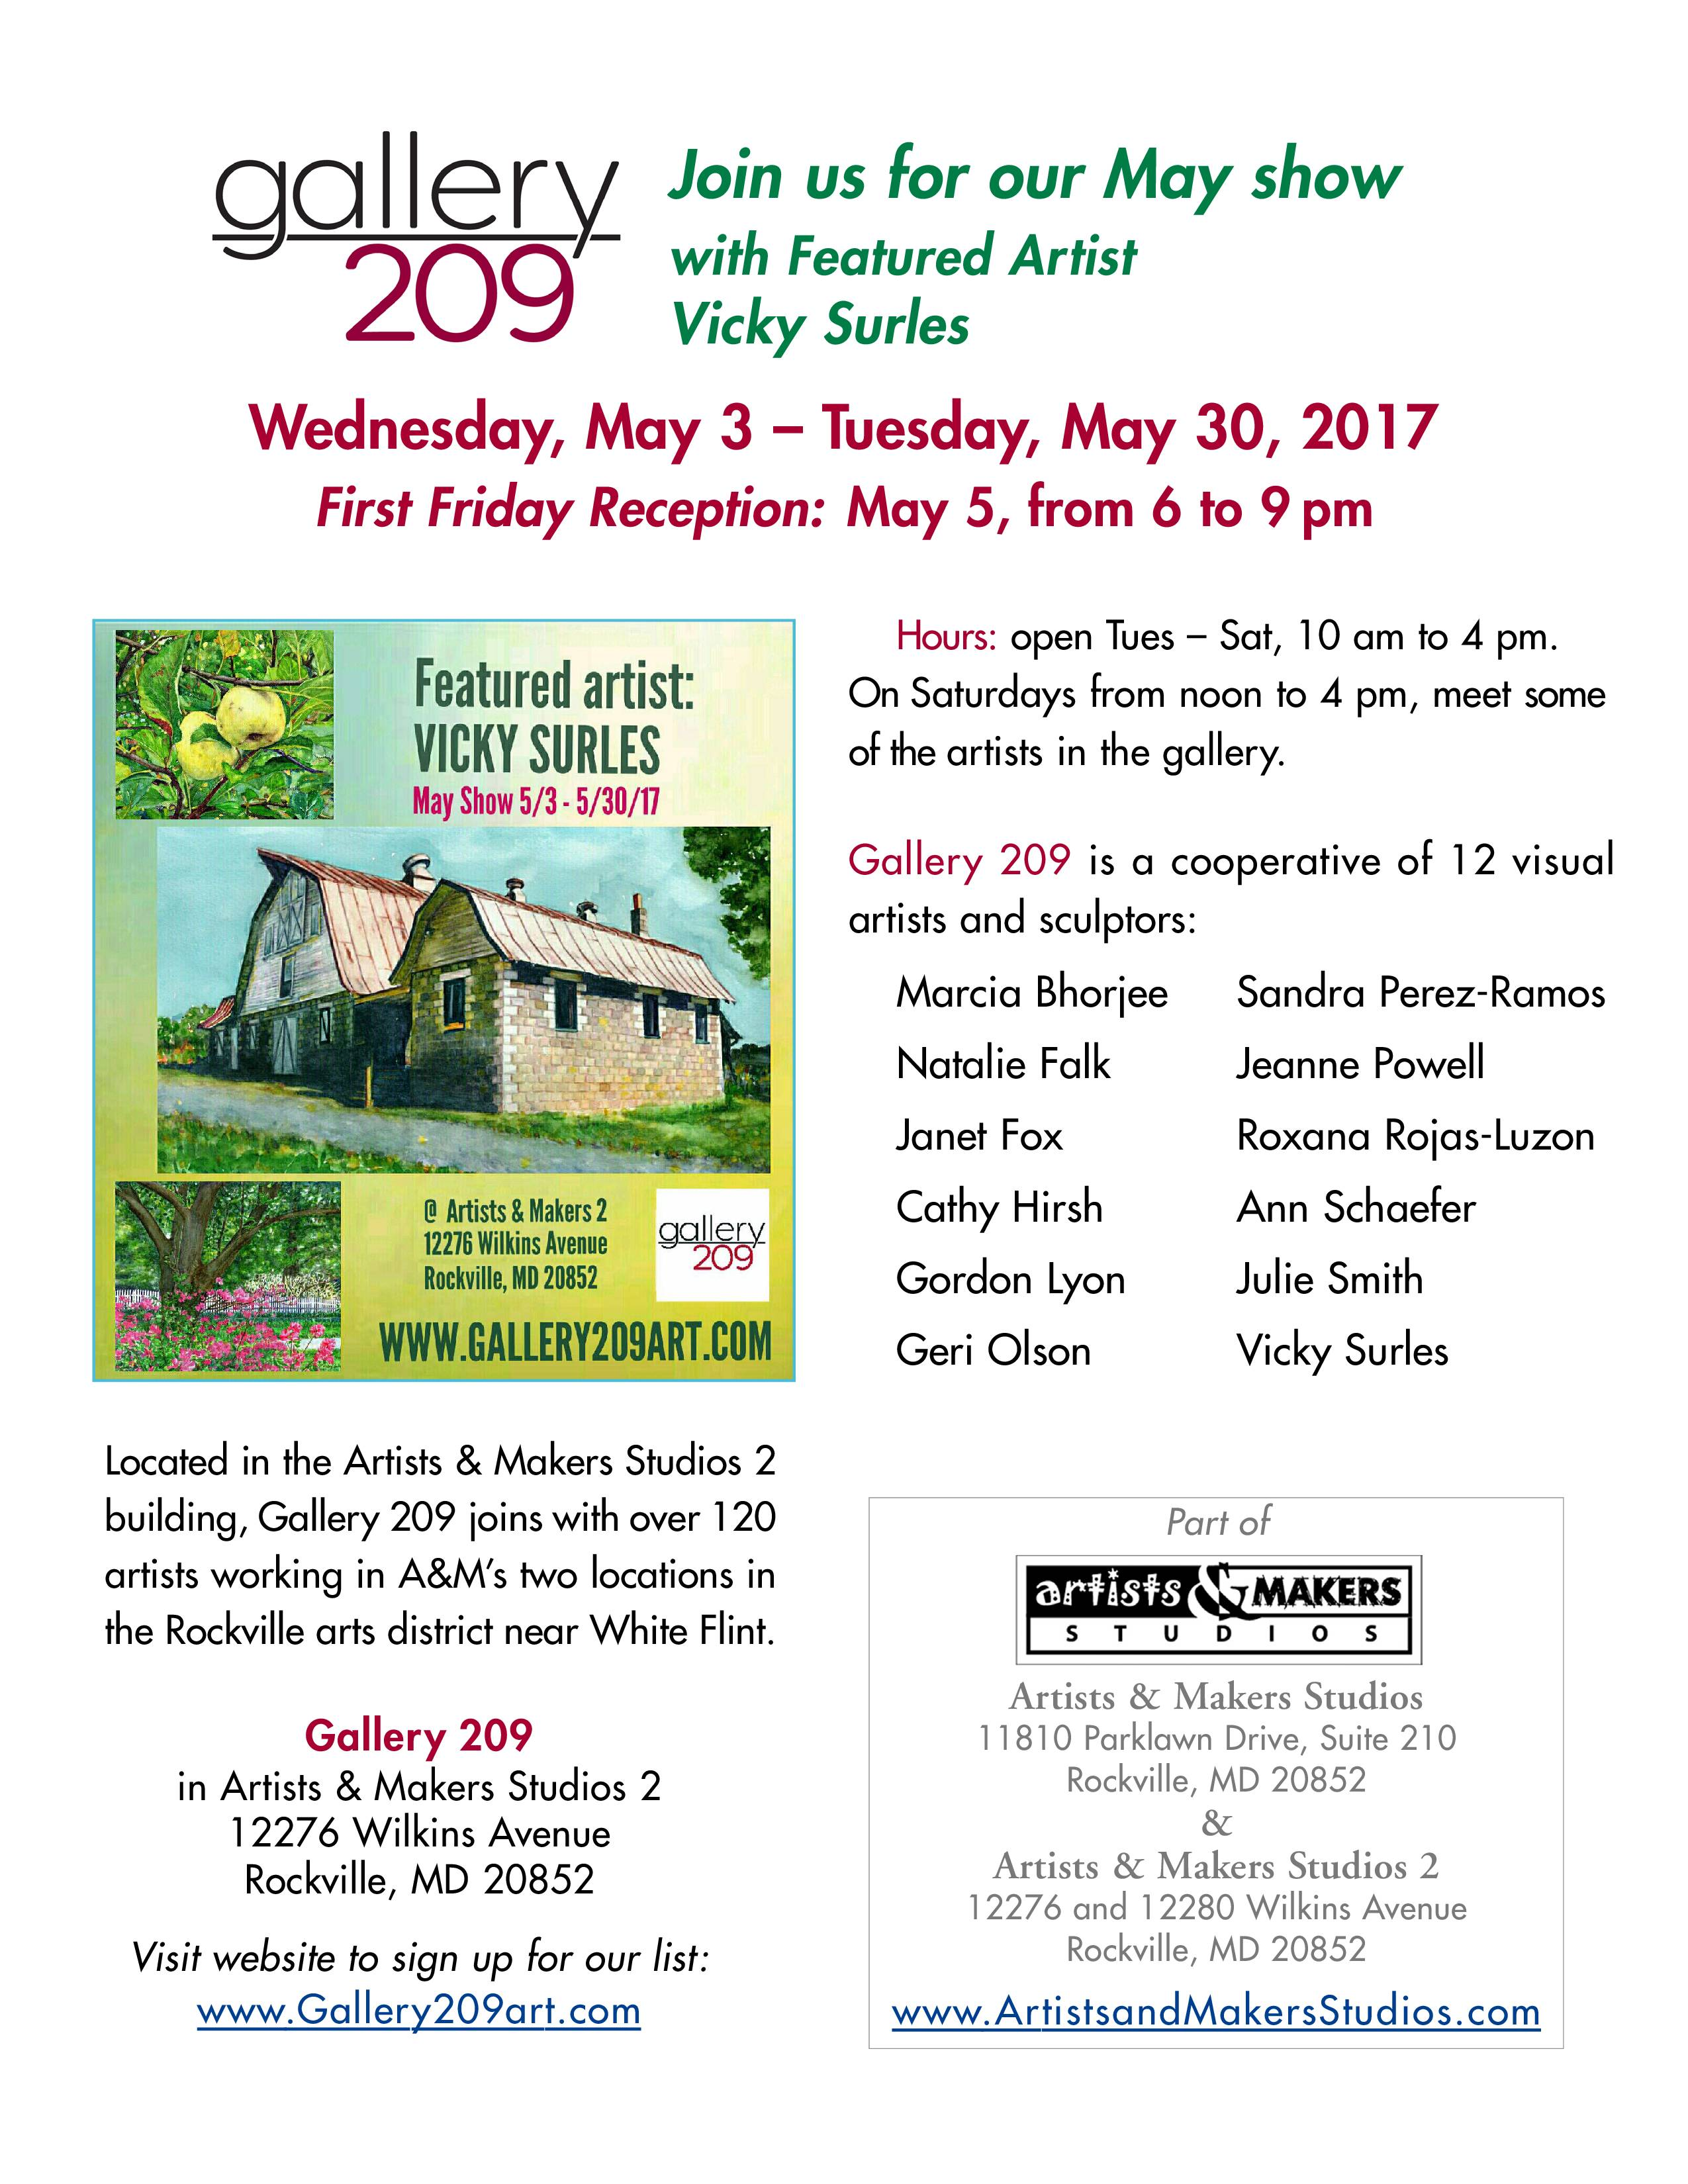 Gallery209- May 2017 Show